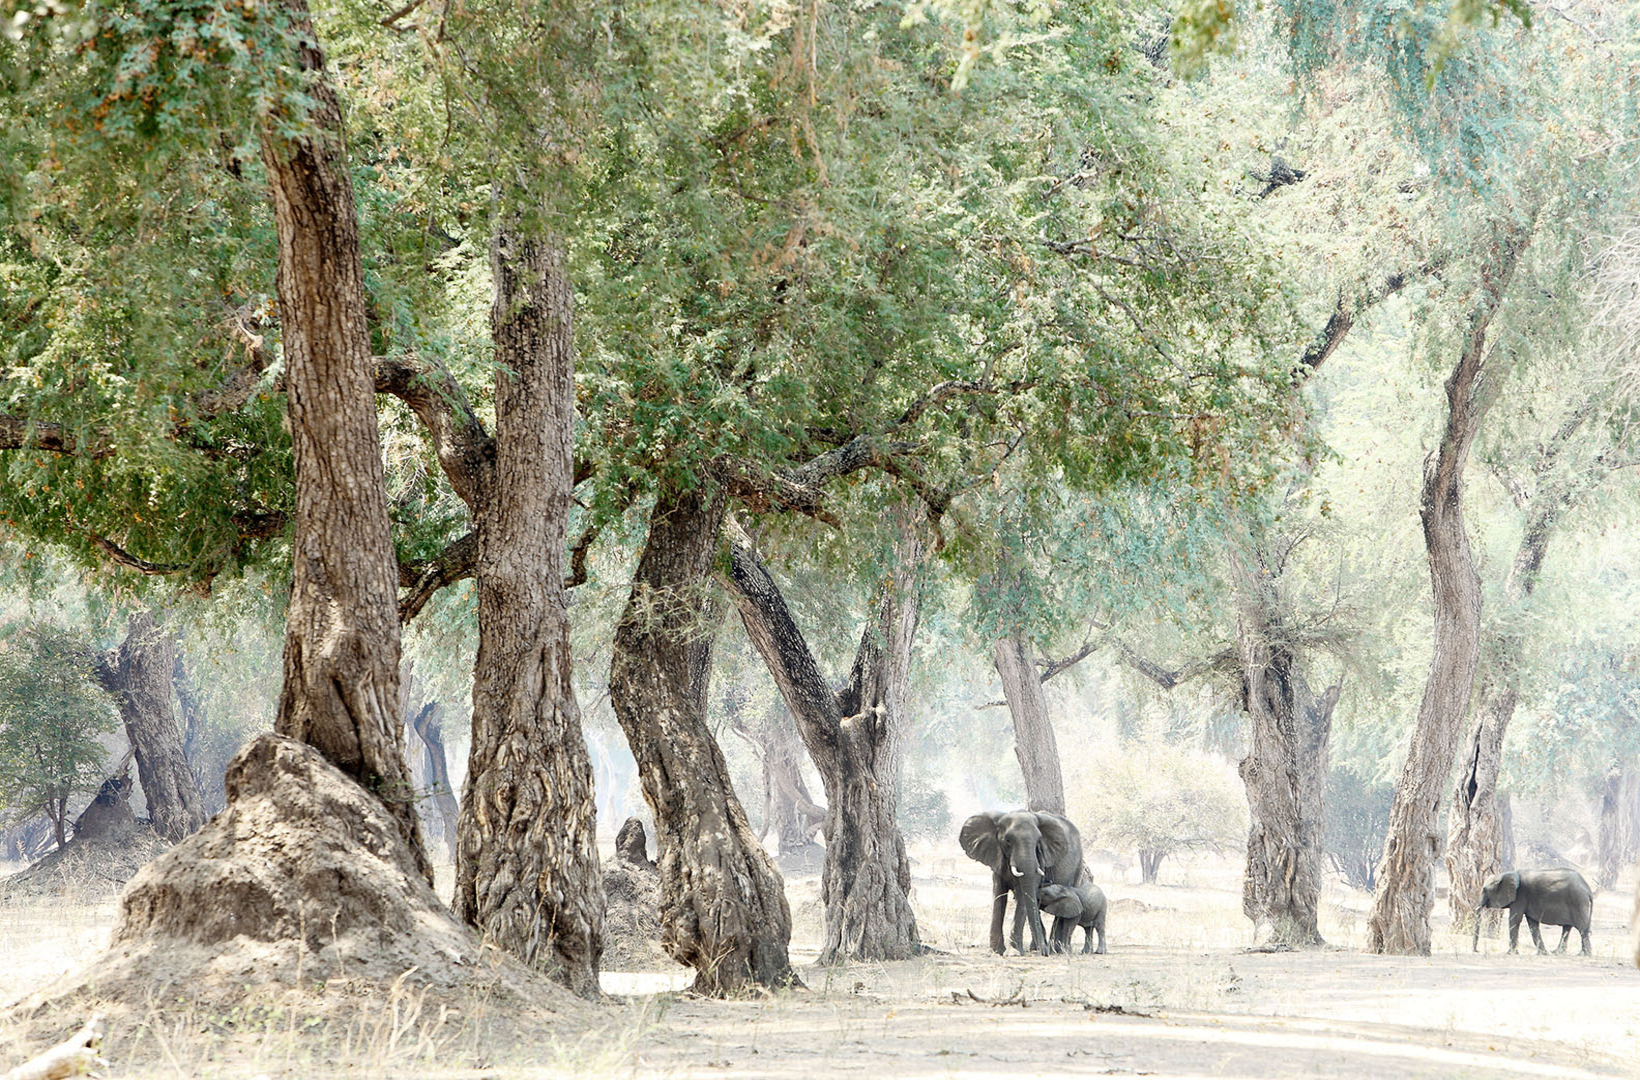 A small elephant calf nurses from its mother amongst the shade of an Albida Fibida glade in Mana Pools National Park in Zimbabwe